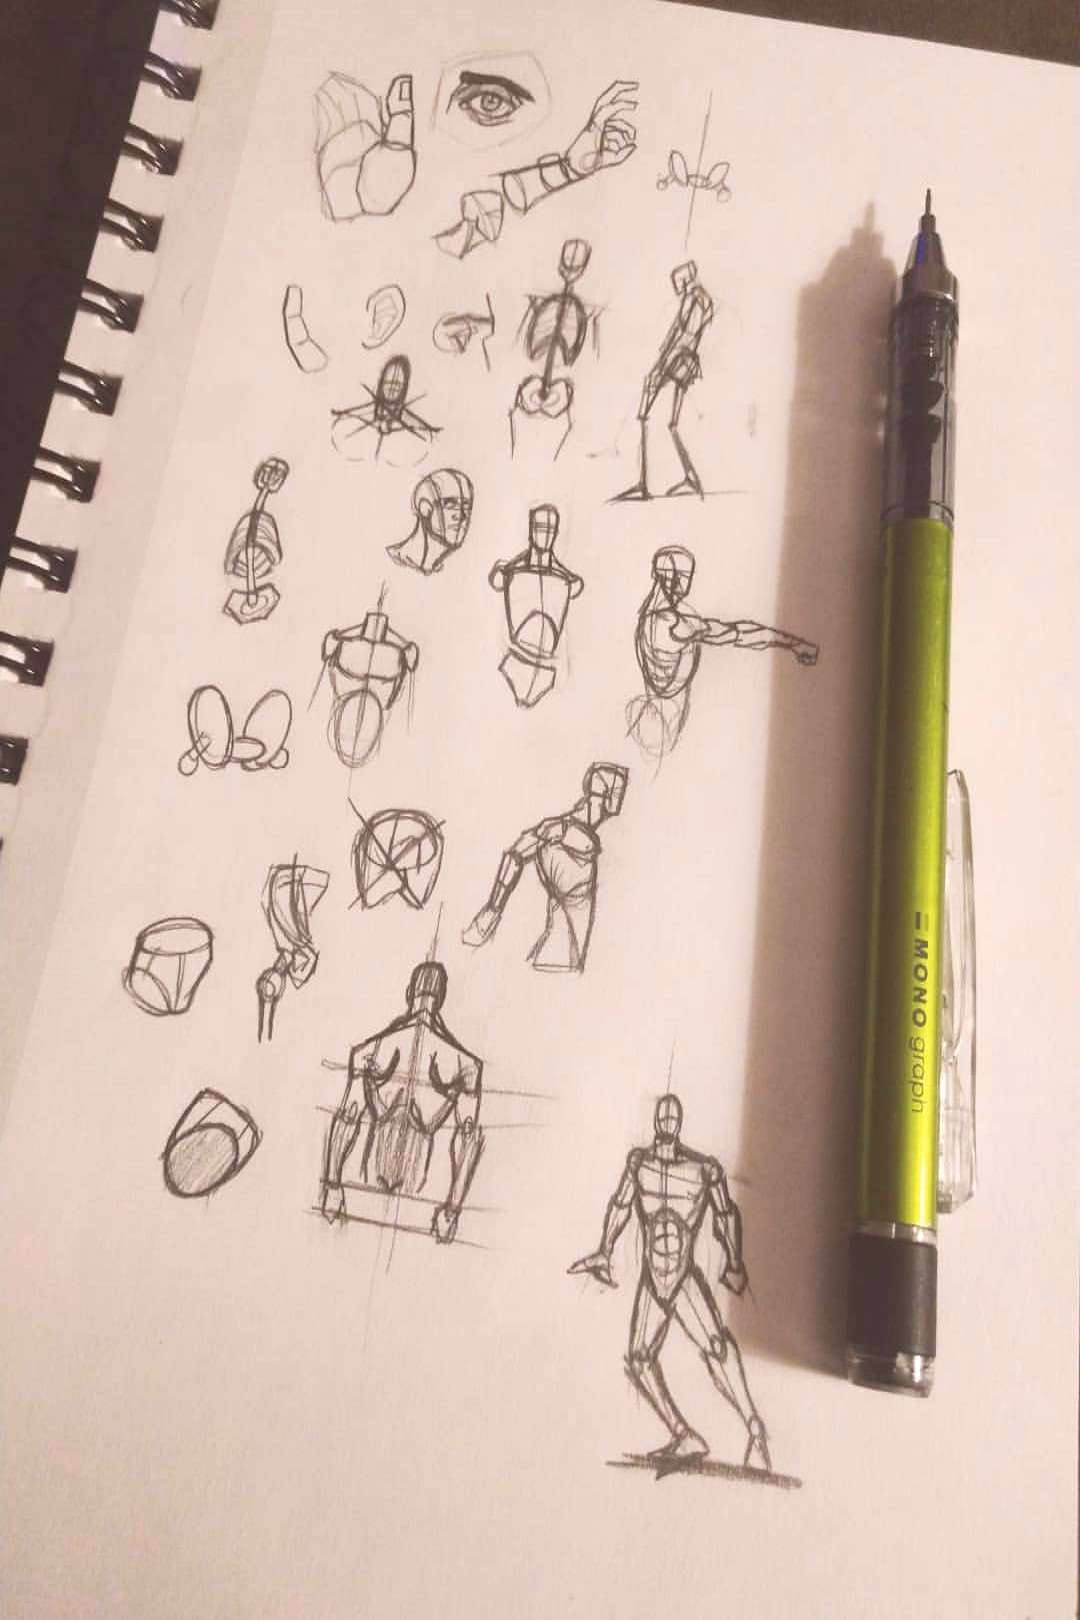 A bunch of sketches I did and a random little rough art work #art